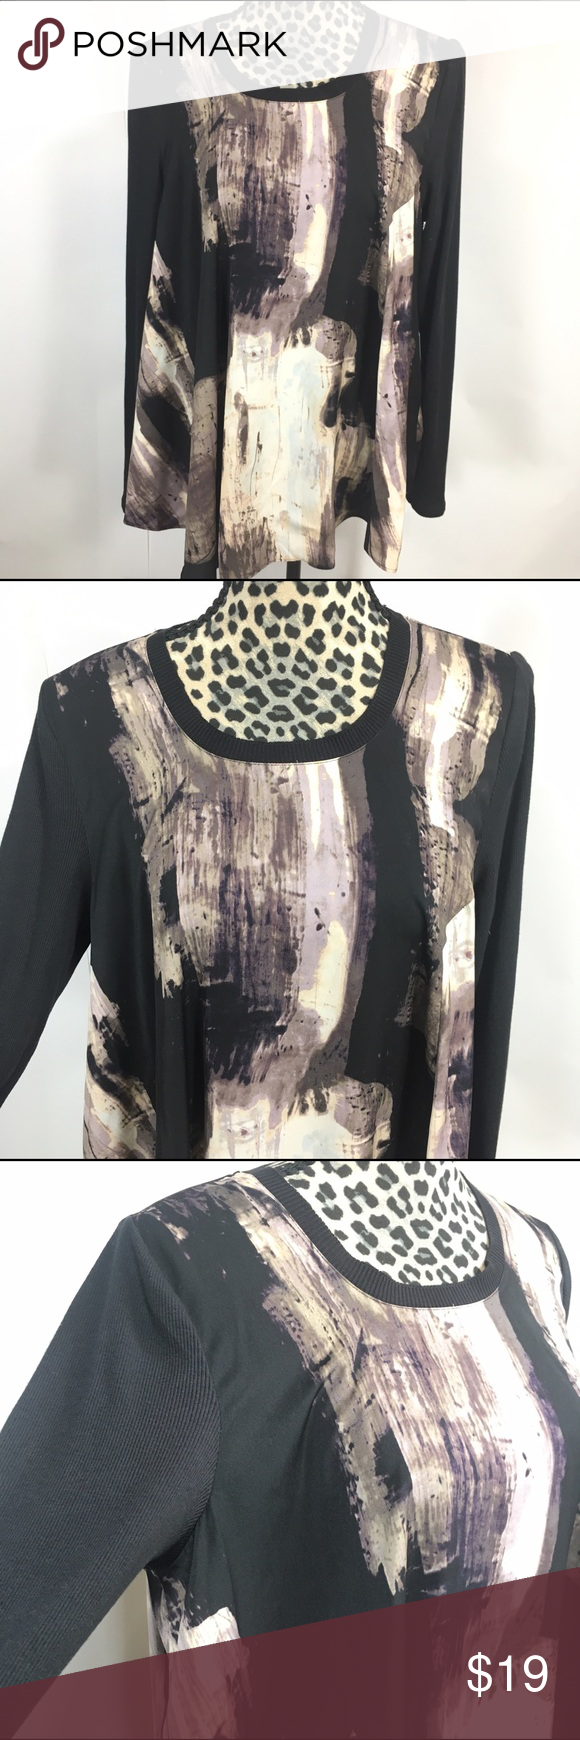 """Simply Vera by Vera Wang Top Simply Vera by Vera Wang Top; NWT;  Asymmetrical 31"""" Length Cut on the Right Front , Straight 24"""" Length Cut in the Back;  25"""" Sleeve Length; 40"""" Bust;  Body: 100% Polyester, Sleeve: 50% Cotton, 40% Modal Simply Vera Vera Wang Tops"""